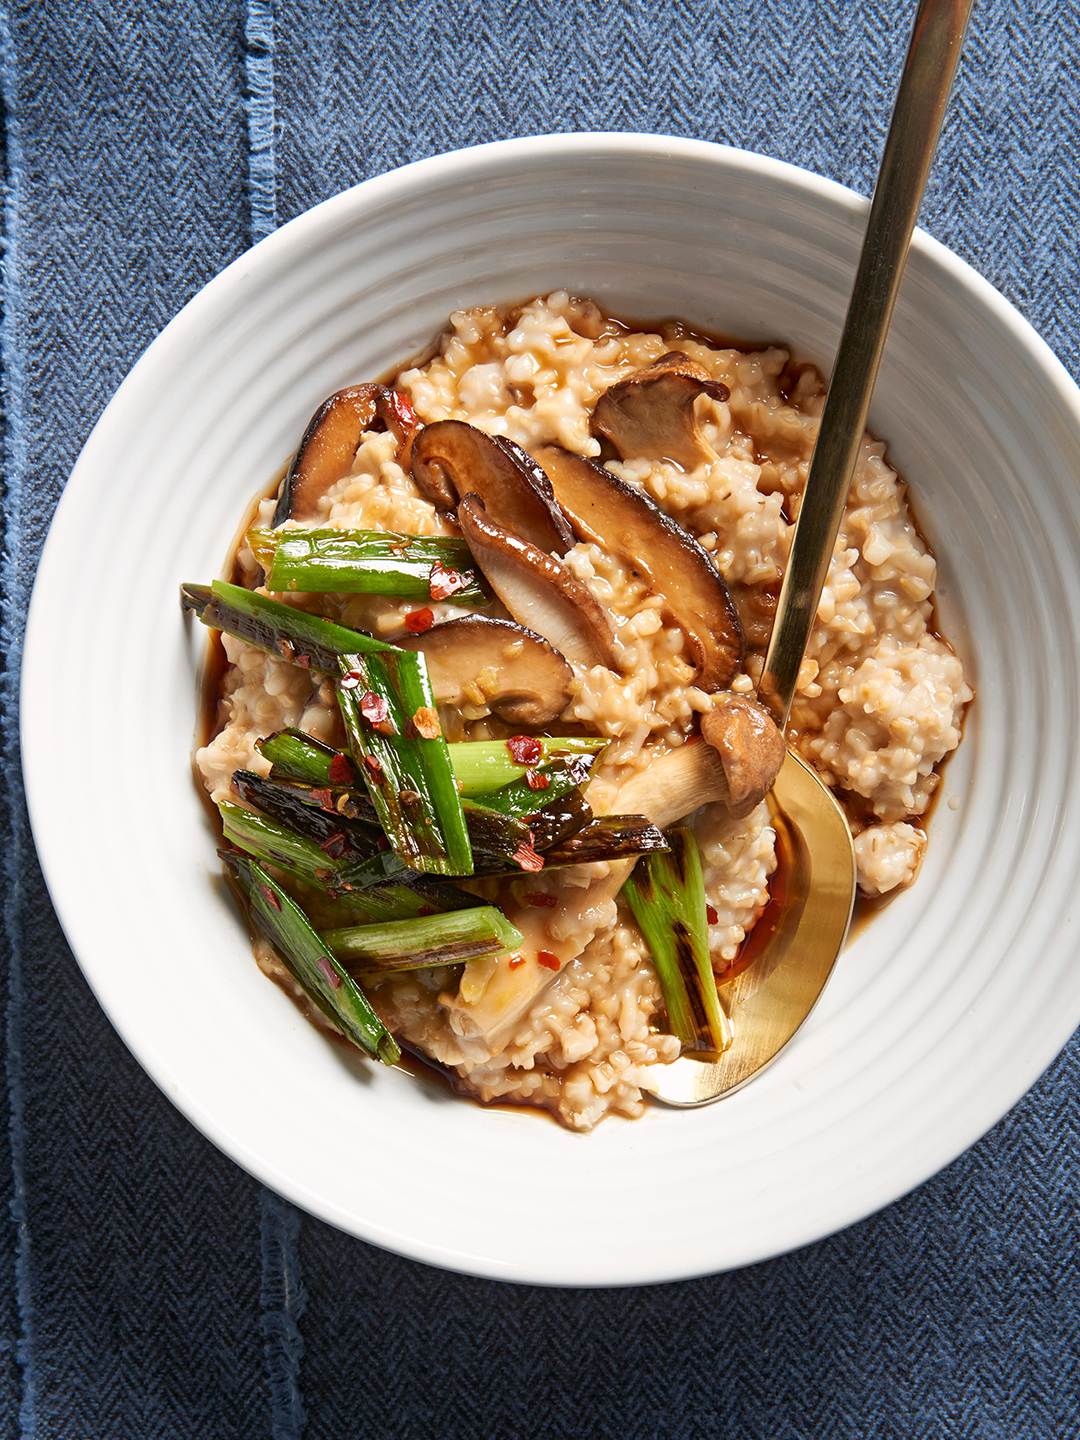 Ginger-Sesame Oats with Mushrooms and Charred Green Onions in white bowl with spoon